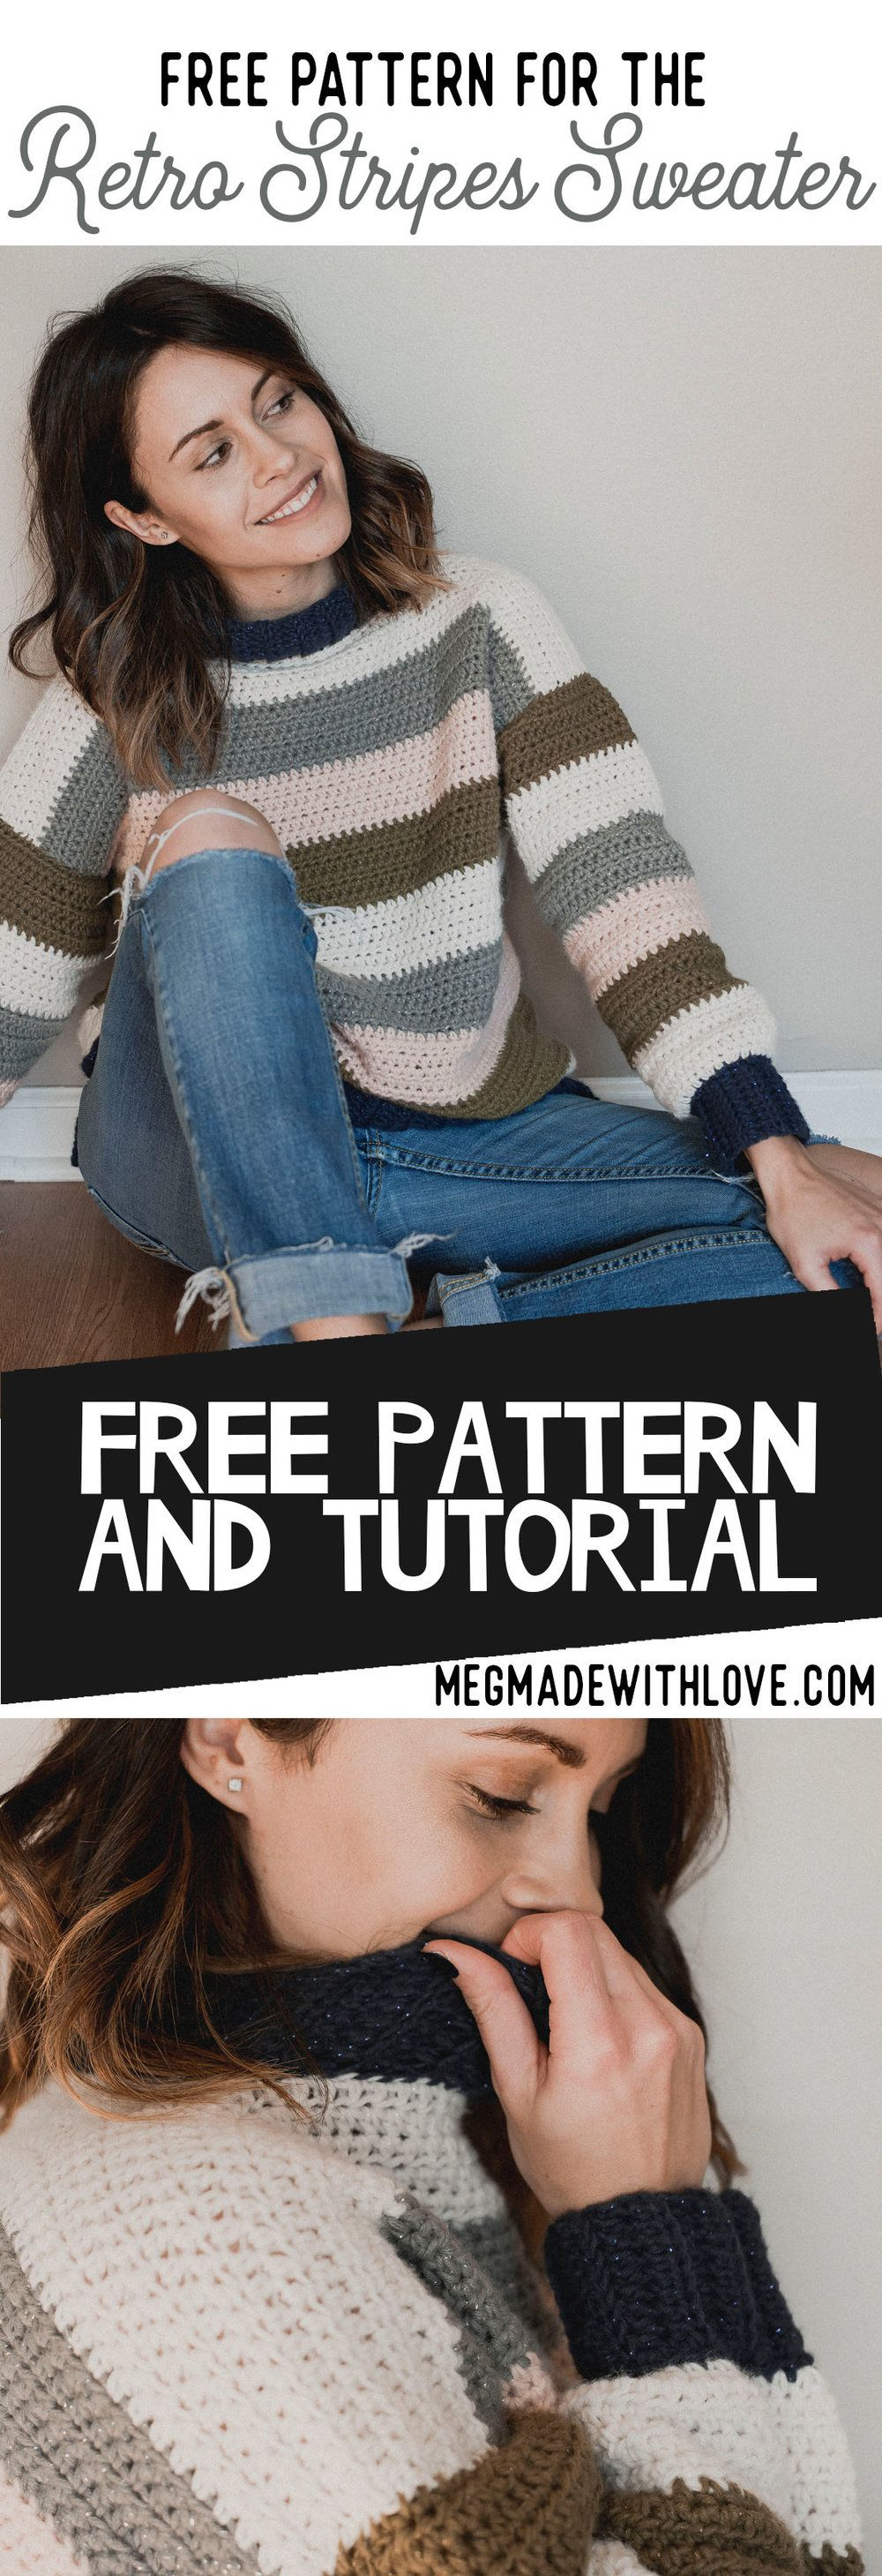 Free Crochet Pattern - Retro Stripes Sweater #crochetedsweaters